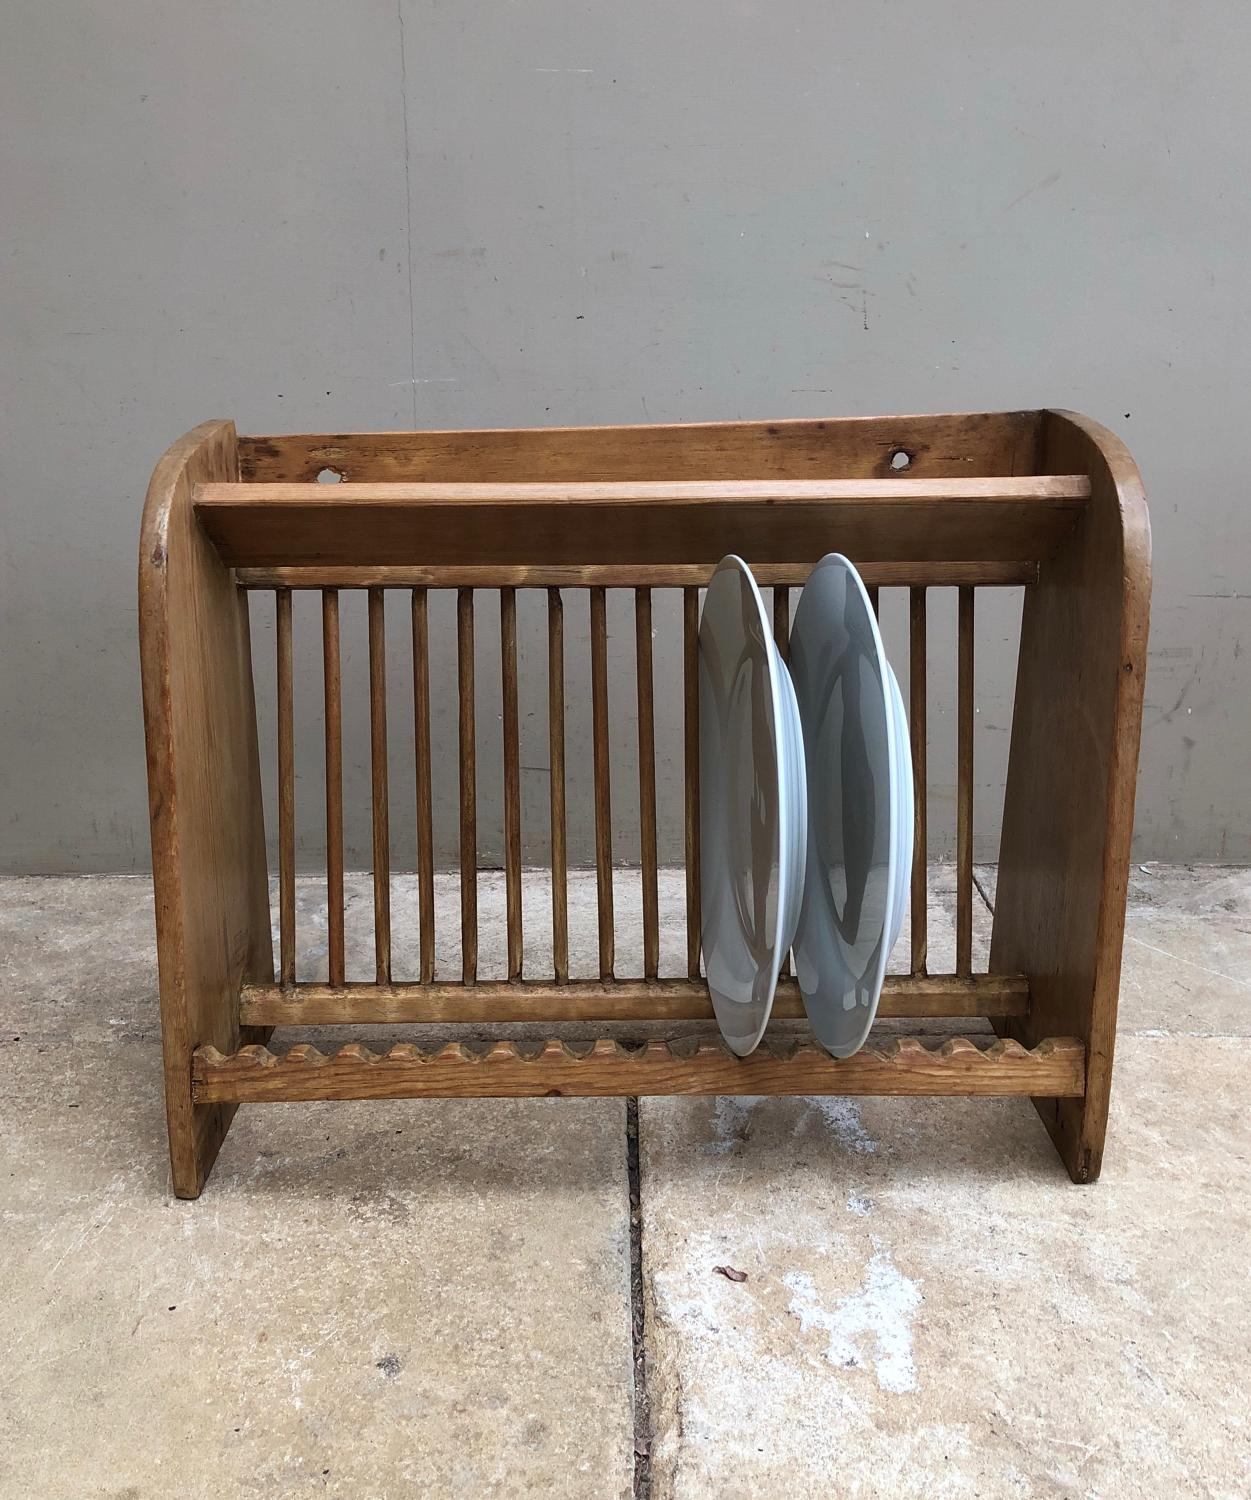 Late Victorian Pine Plate Rack with Cup Shelf